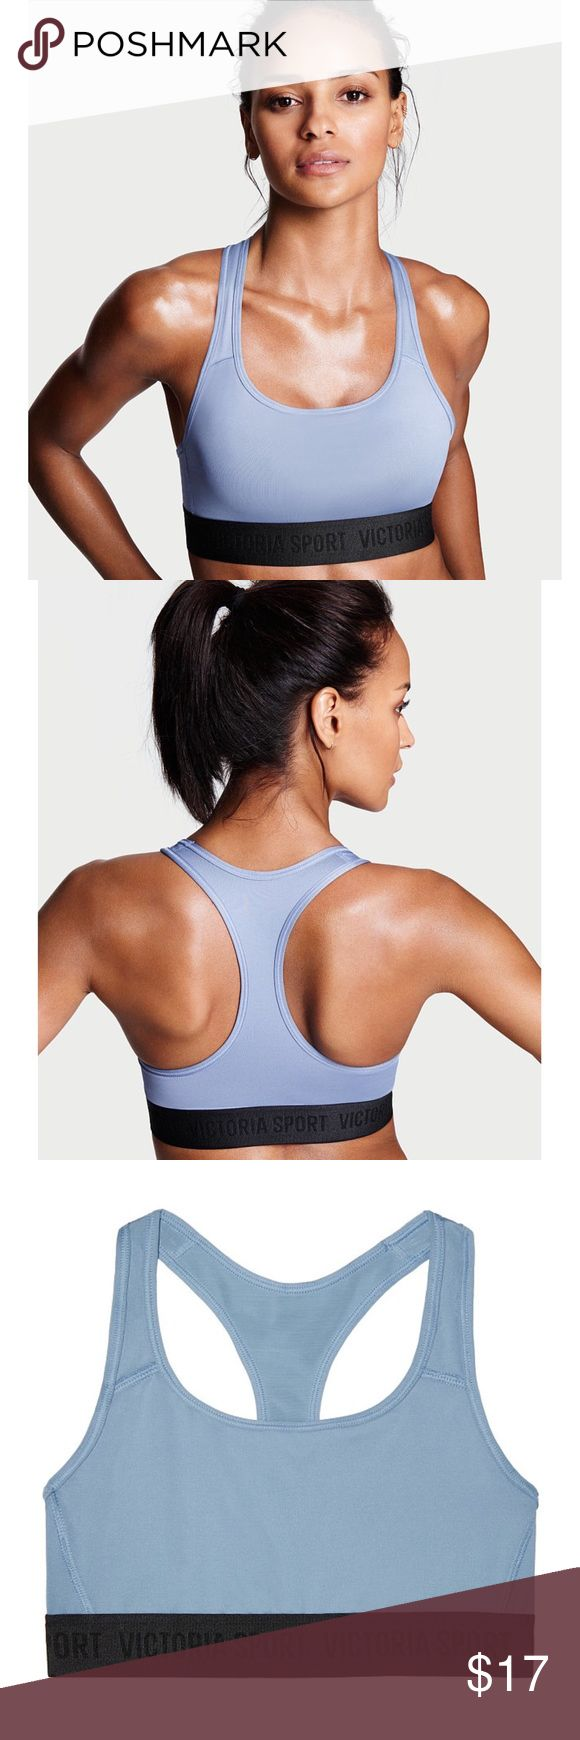 Victoria's Secret VSX Sport Racerback Sports Bra Brand new with tags, size Medium. This Victoria's Secret VSX Sport Racerback Sports Bra is both functional and stylish. Comes in the color Faded Denim, which is a beautiful baby blue color. Has the Victoria Sport logo on the black band. Medium support. Lightweight fabric with four way stretch. Body Wick keeps you cool and dry! Victoria's Secret Intimates & Sleepwear Bras